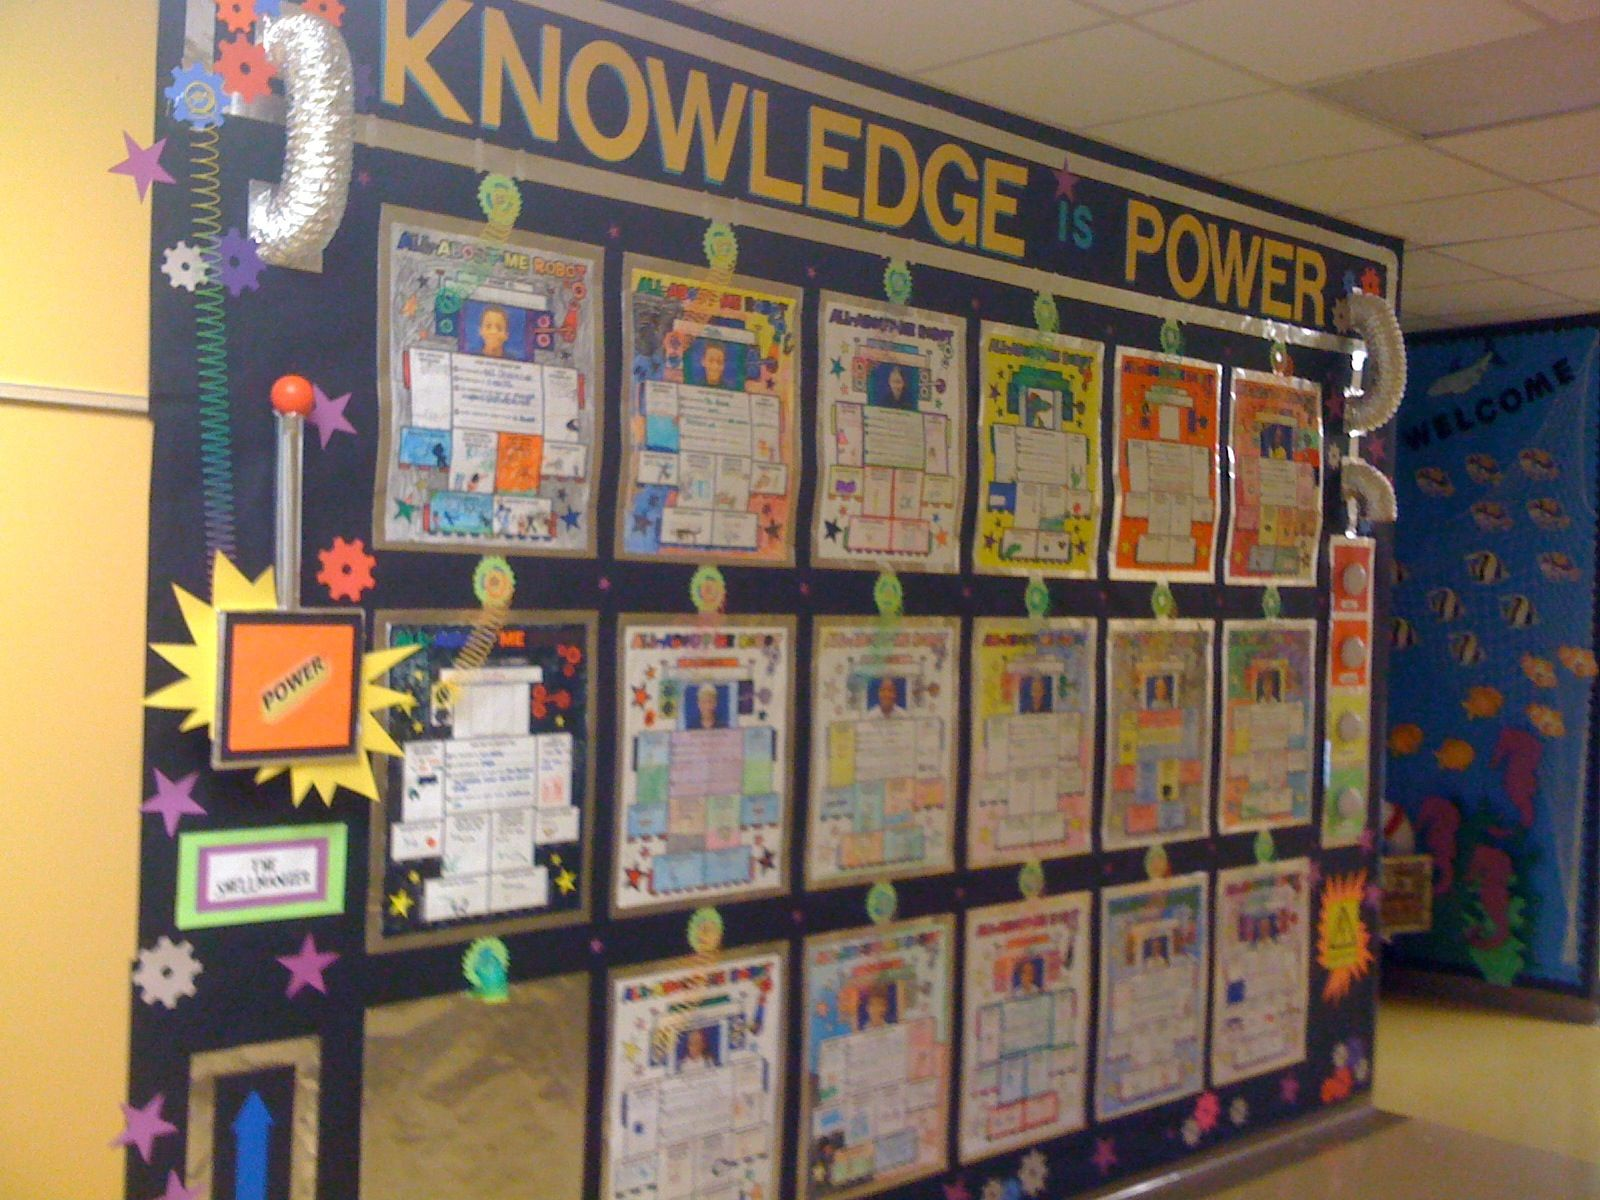 Knowledge is power robots board space classroom